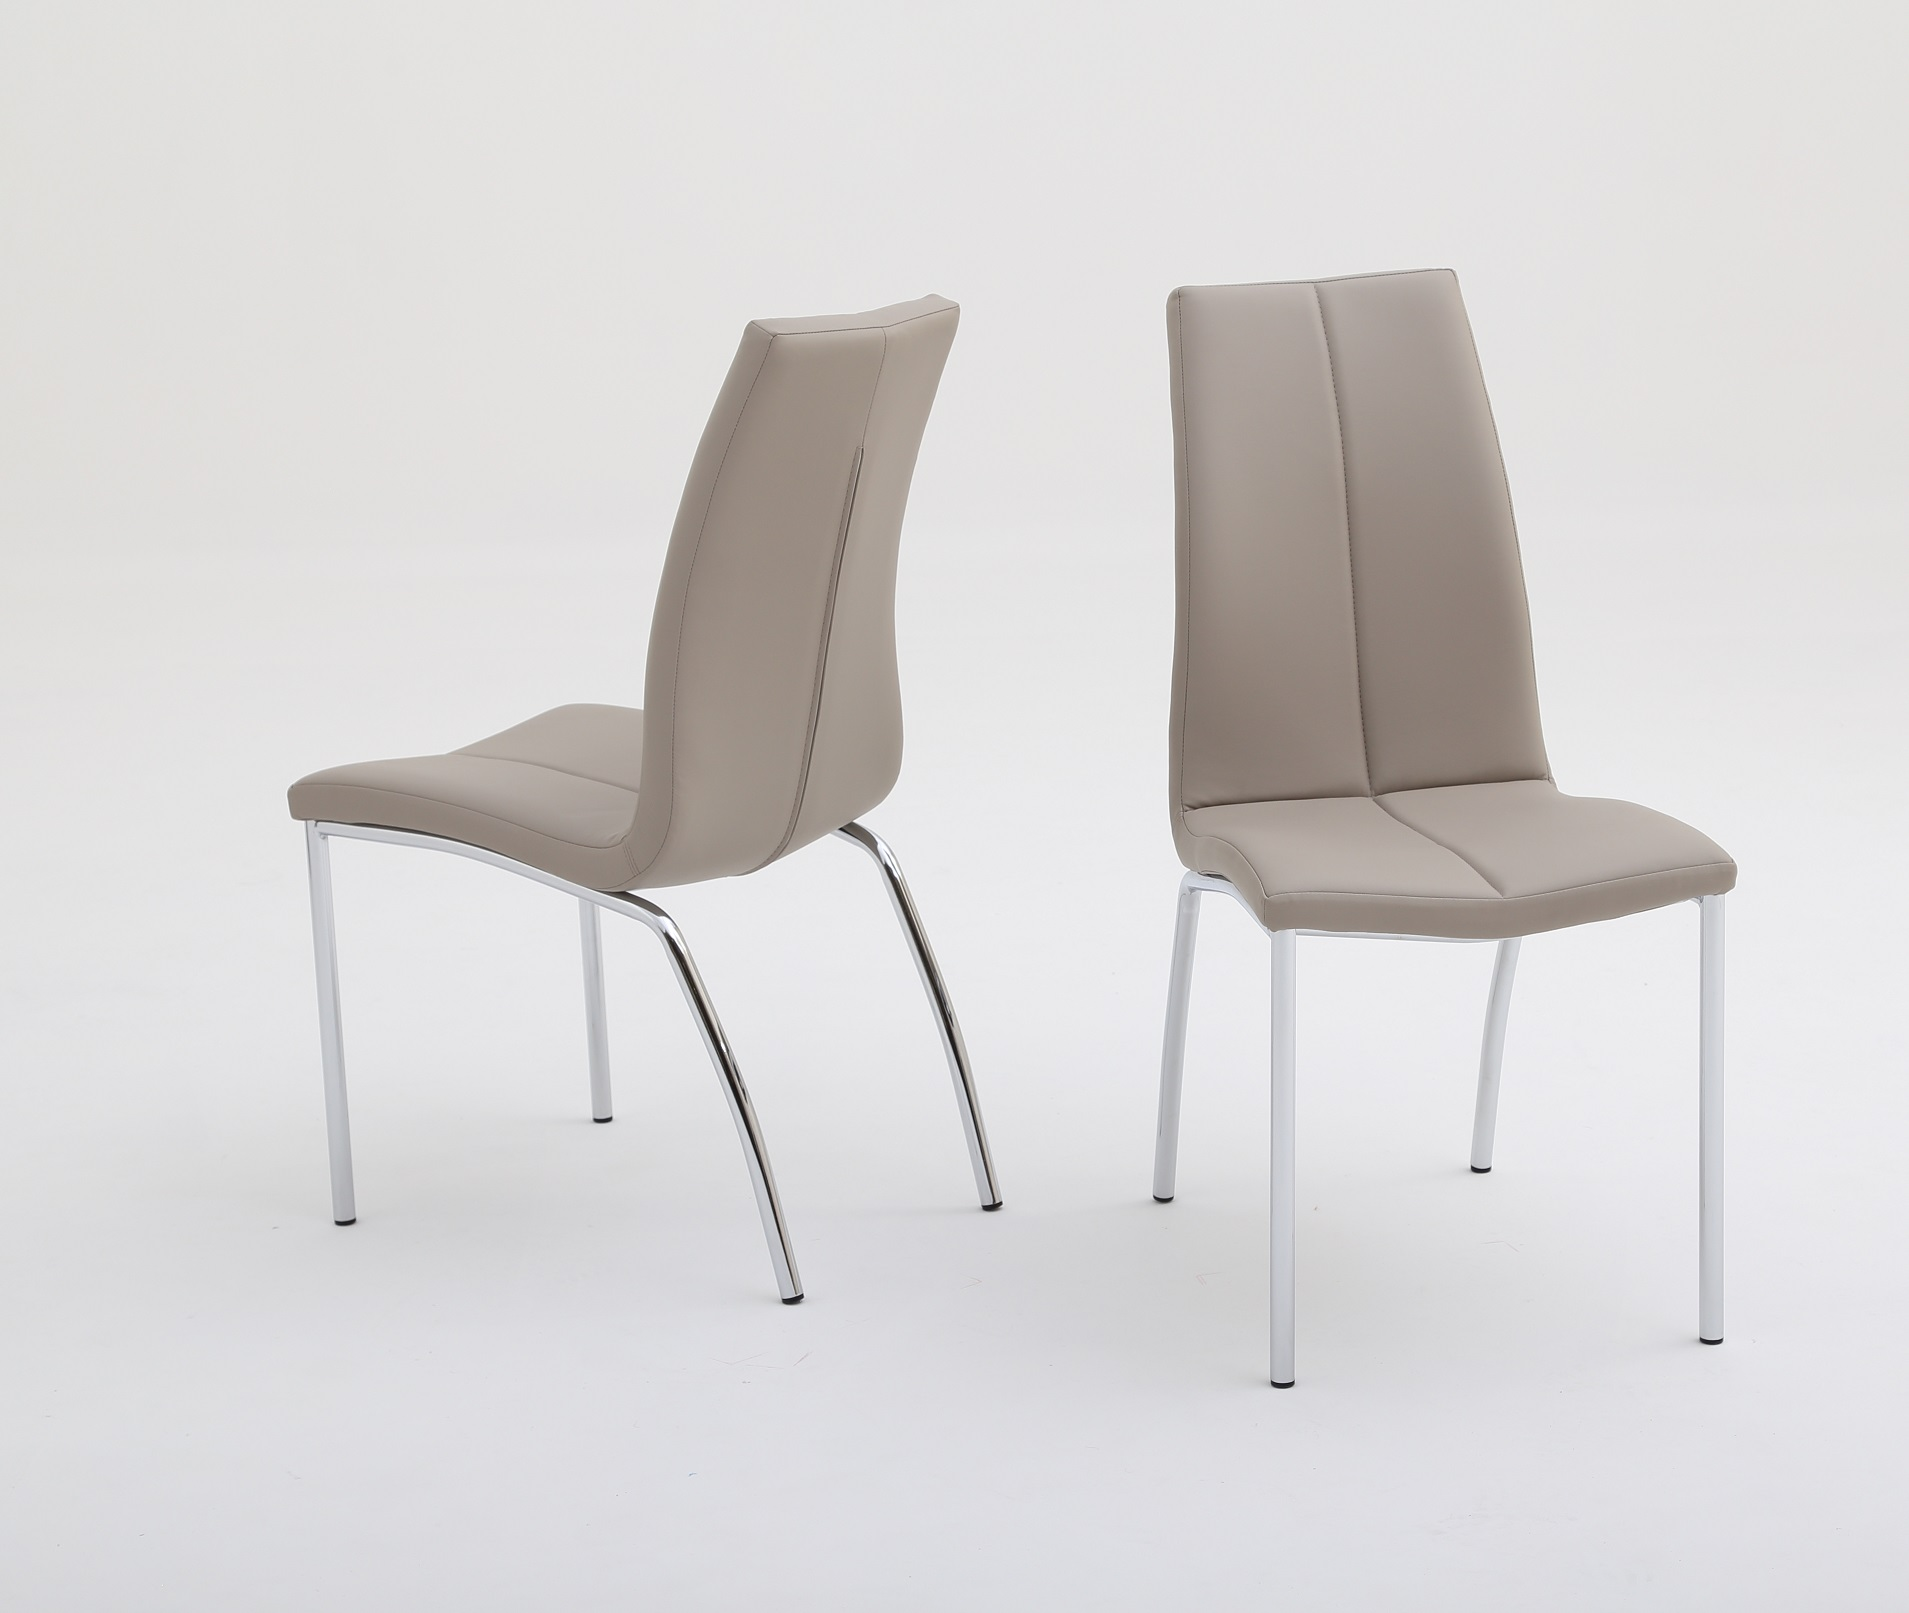 https://www.firstfurniture.co.uk/pub/media/catalog/product/a/v/ava_chair_taupe.jpg